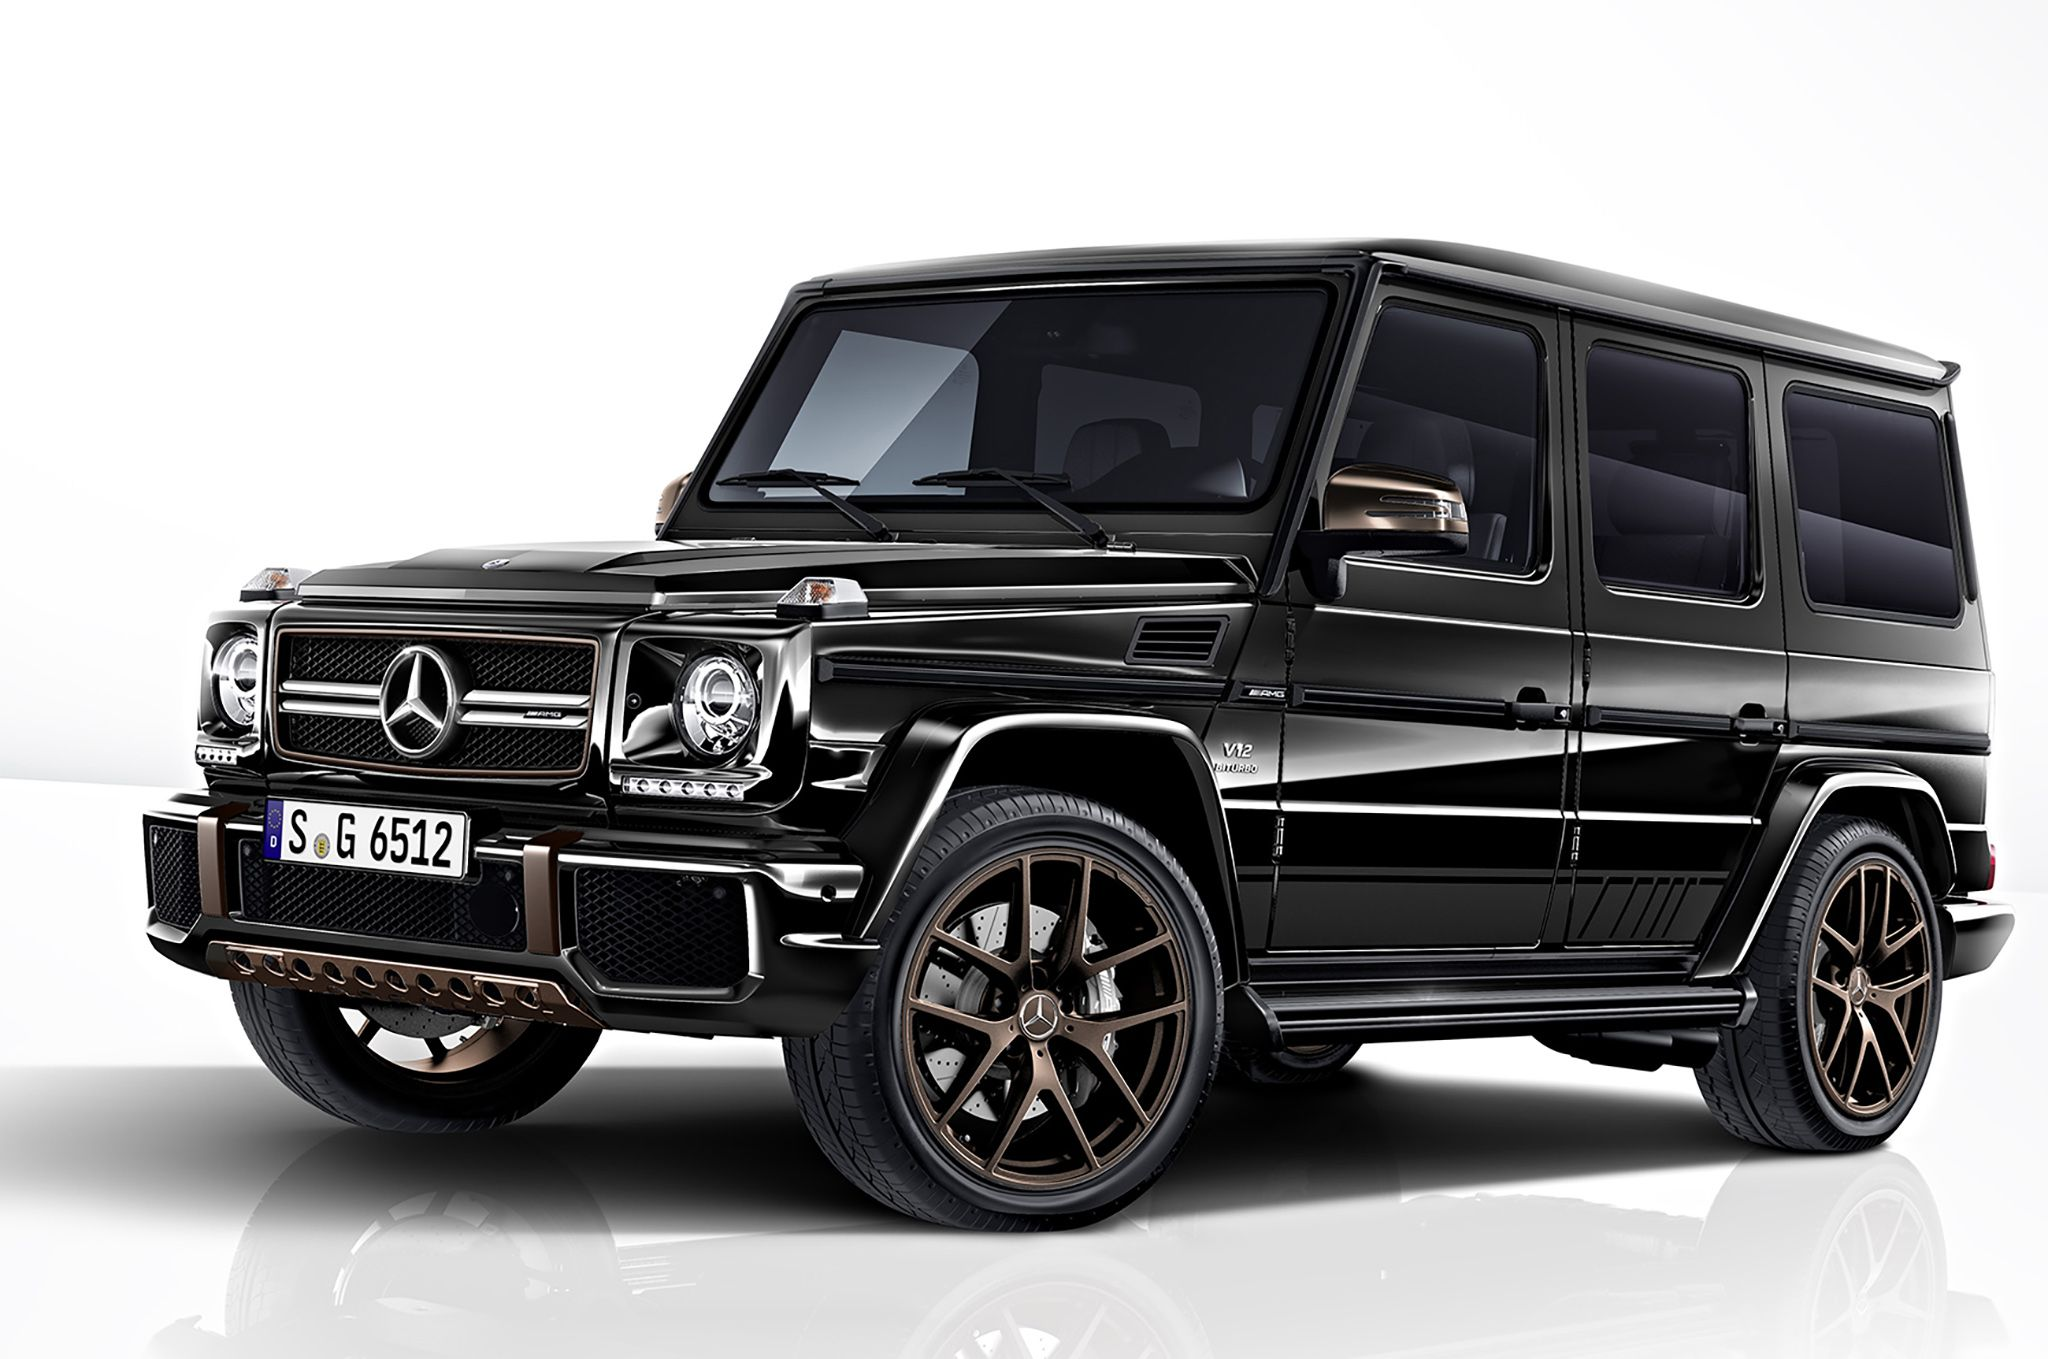 Mercedes Amg G65 Final Edition Is A V 12 G Wagen Send Off